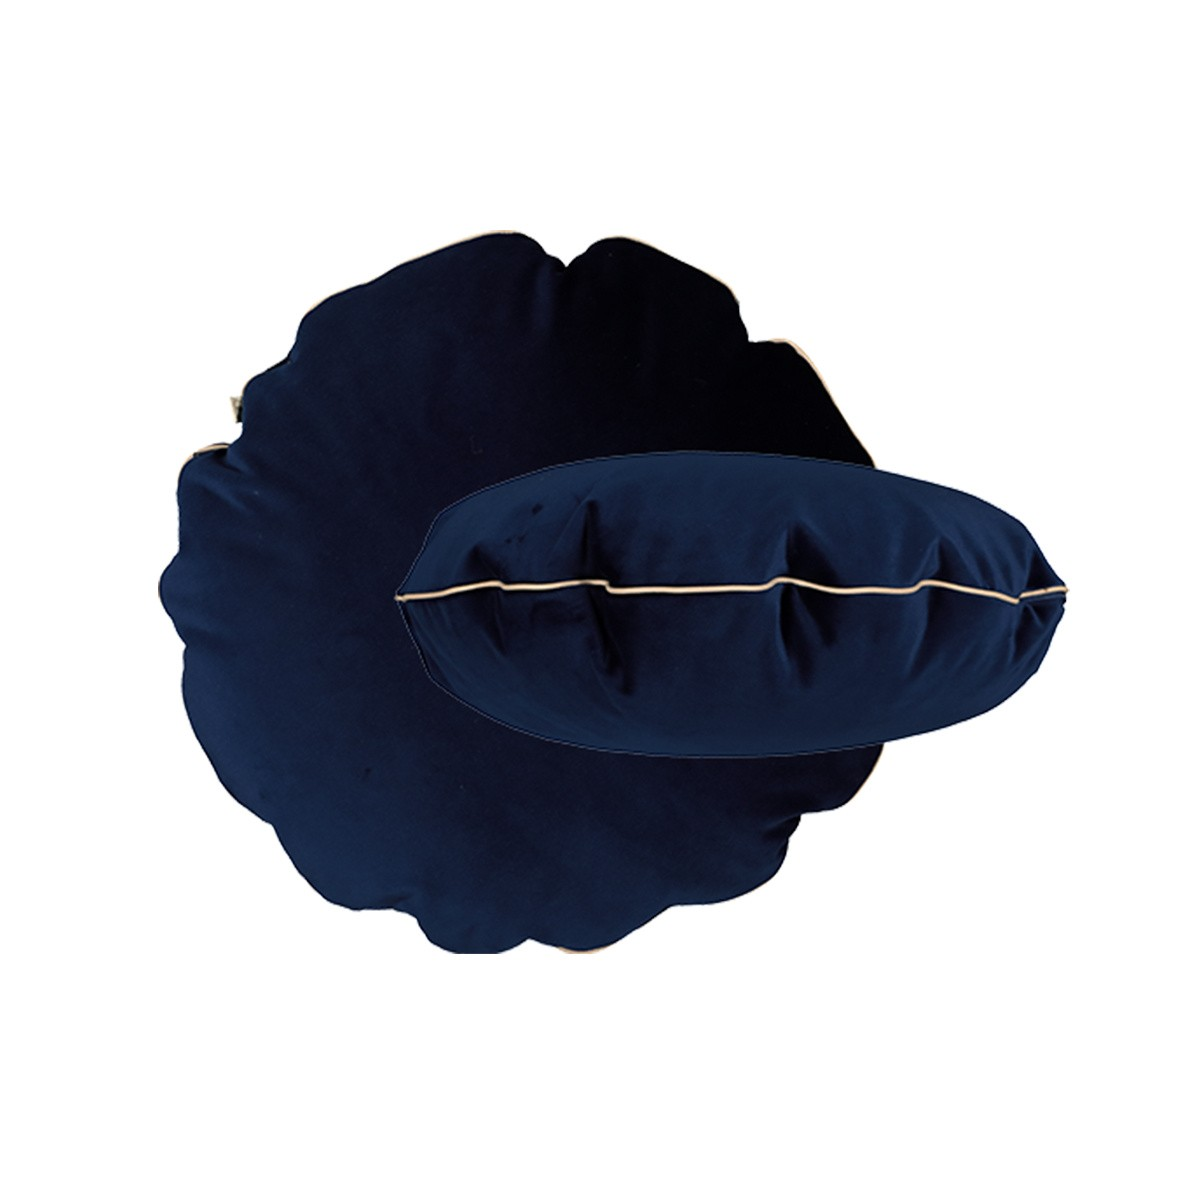 Bomboloni Cushion, Navy Blue Velvet